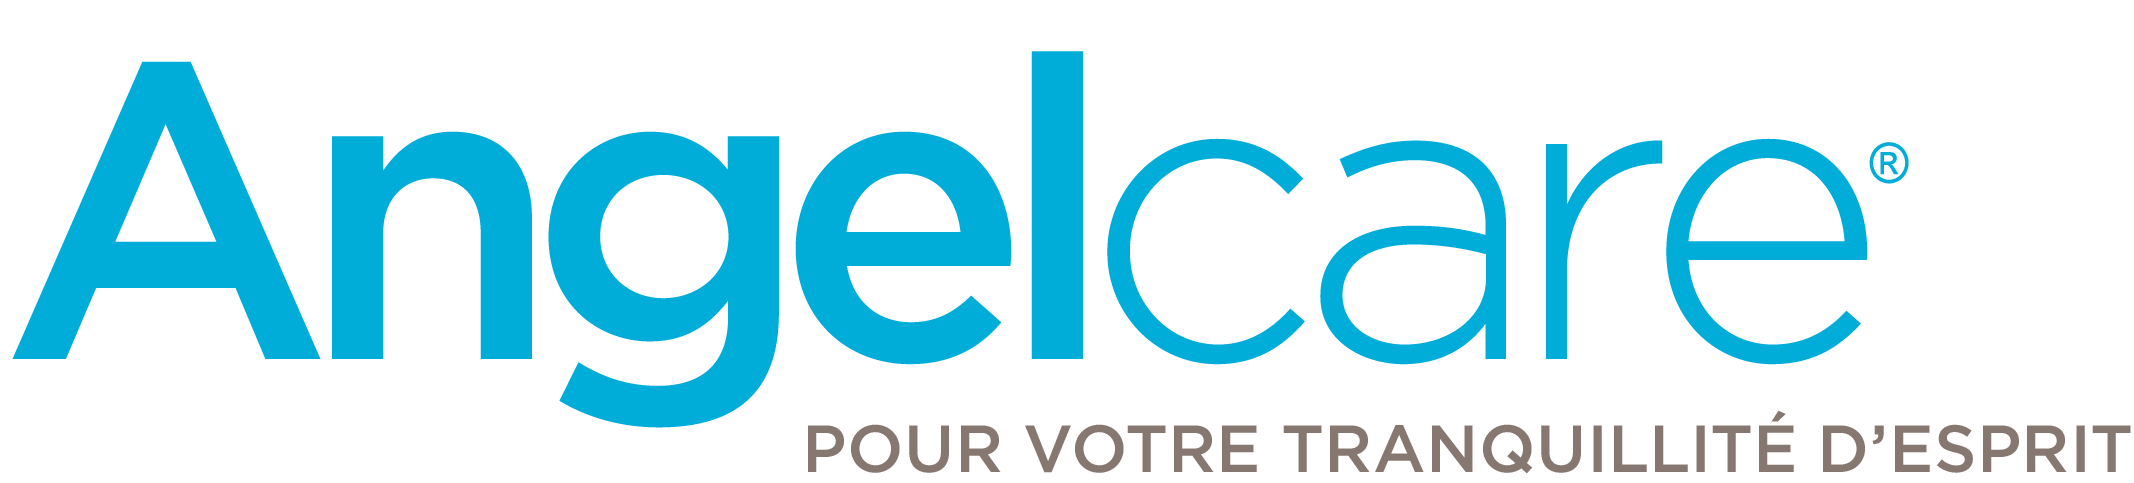 Angelcare_Logo_French